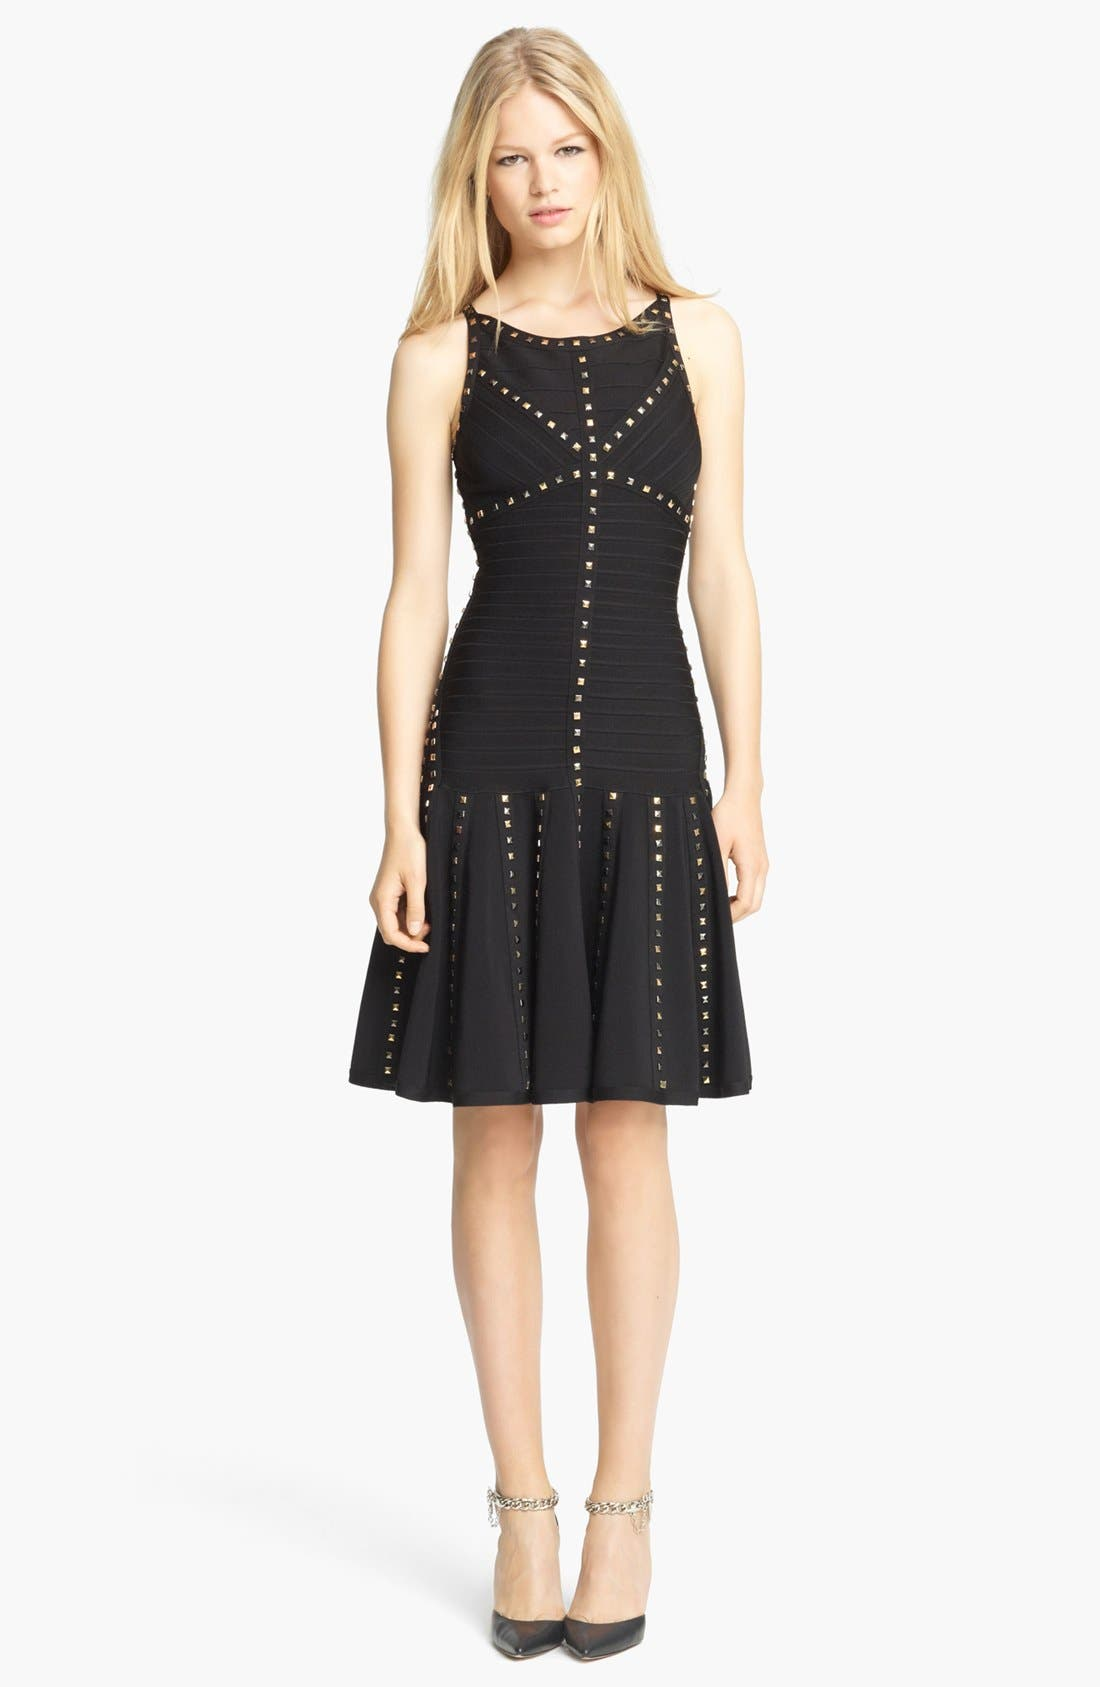 Alternate Image 1 Selected - Herve Leger Gold Studded Dress